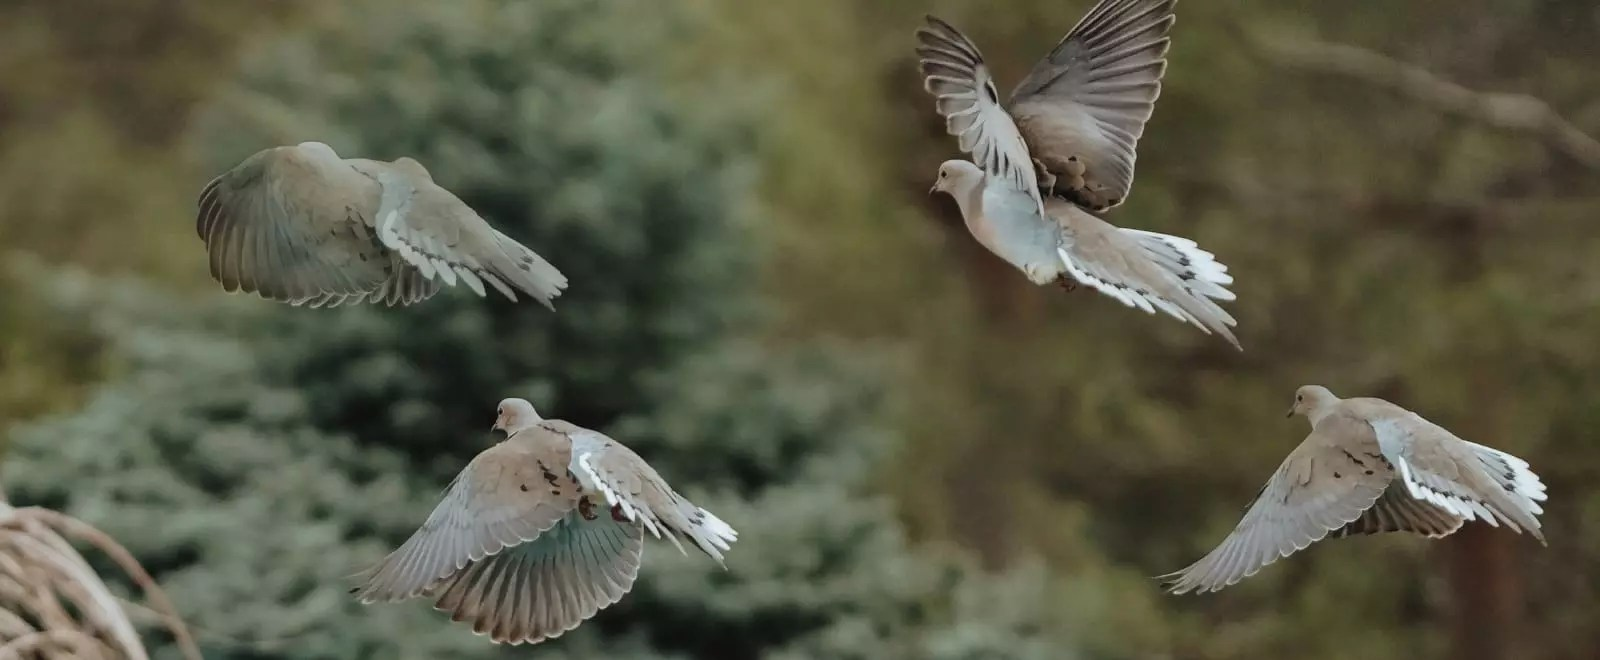 A flock of doves flying by